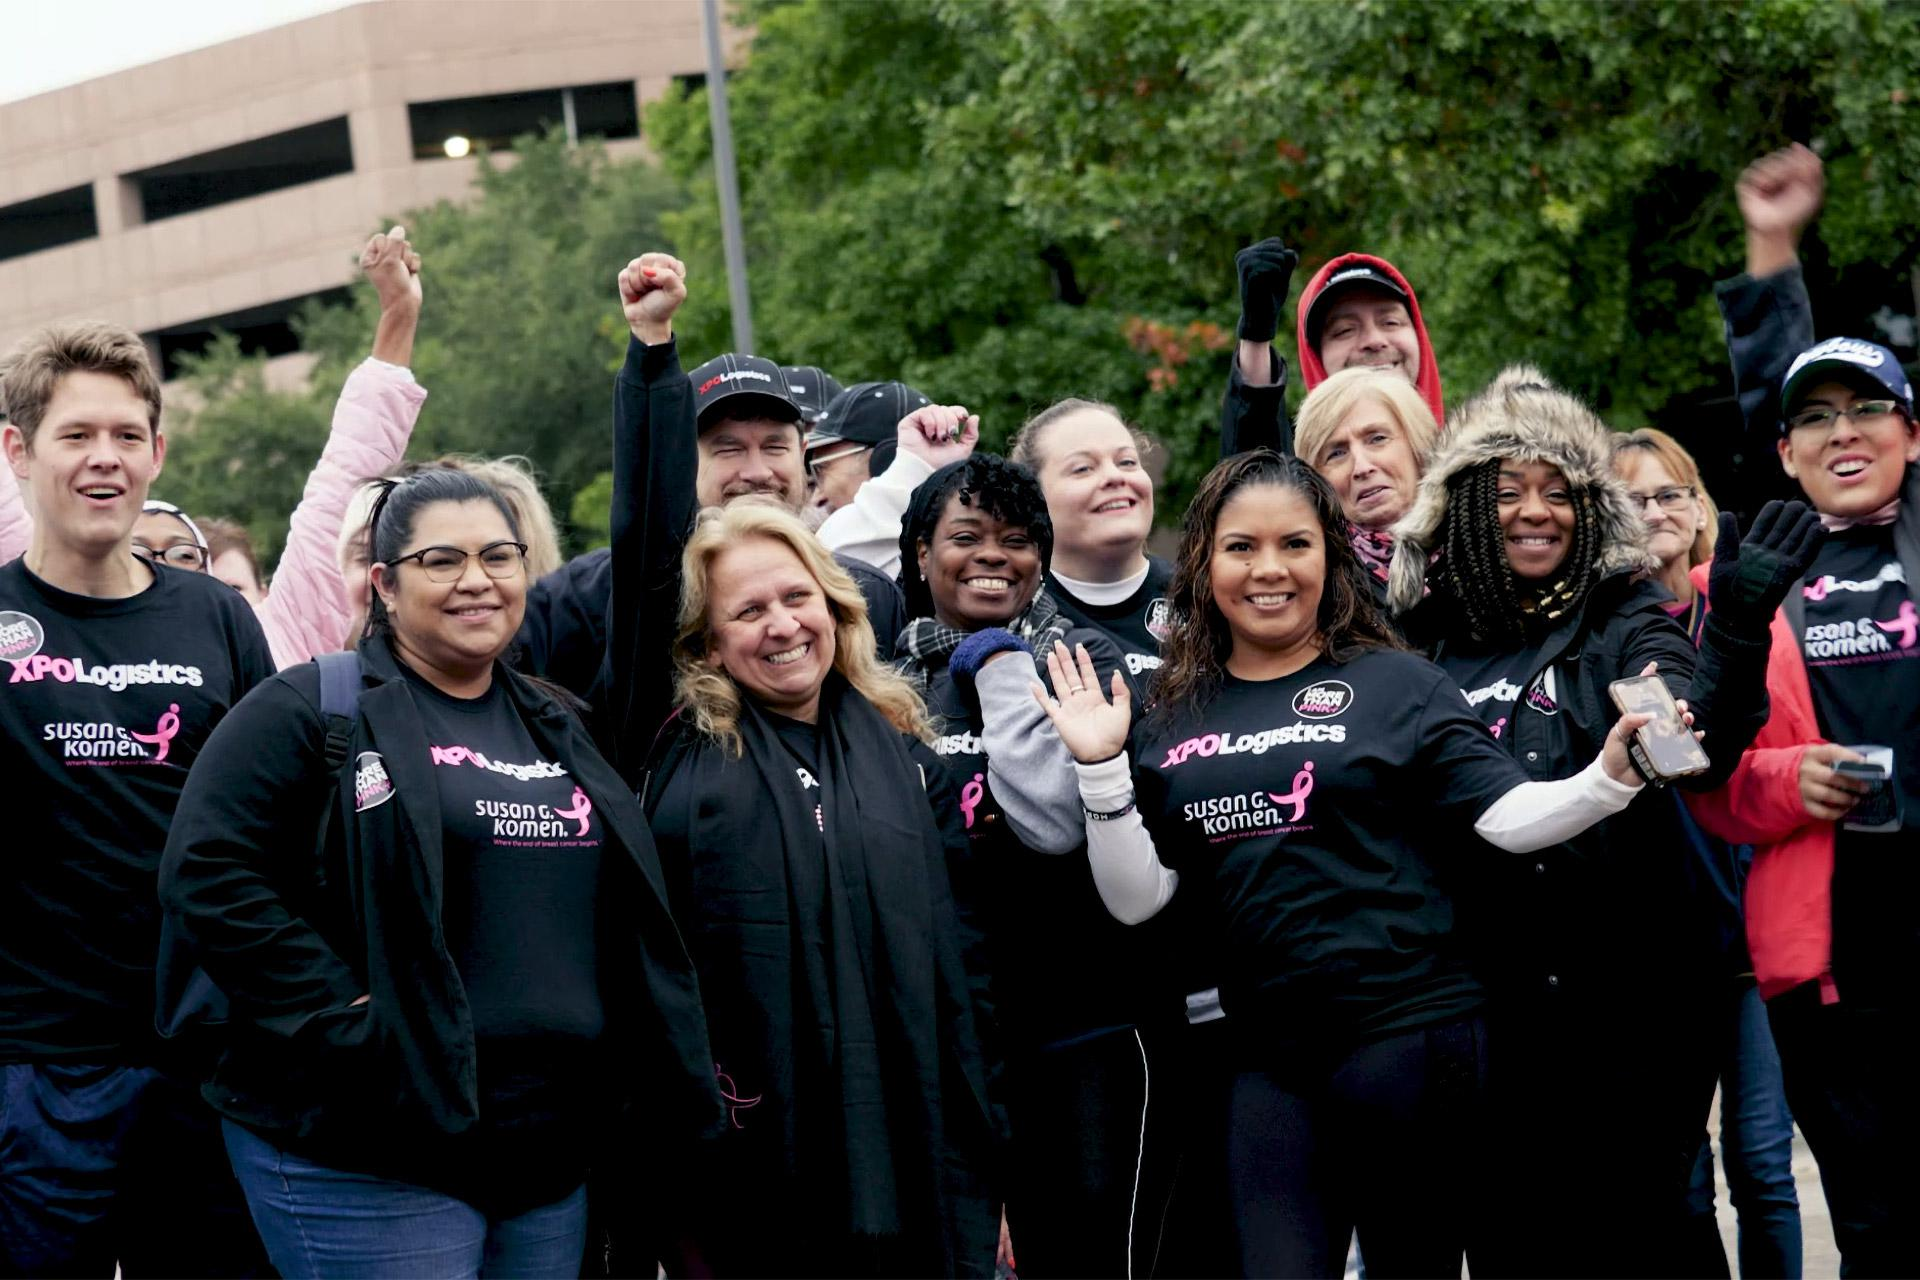 XPO Logistics employees cheer during a Susan G. Komen Race for the Cure